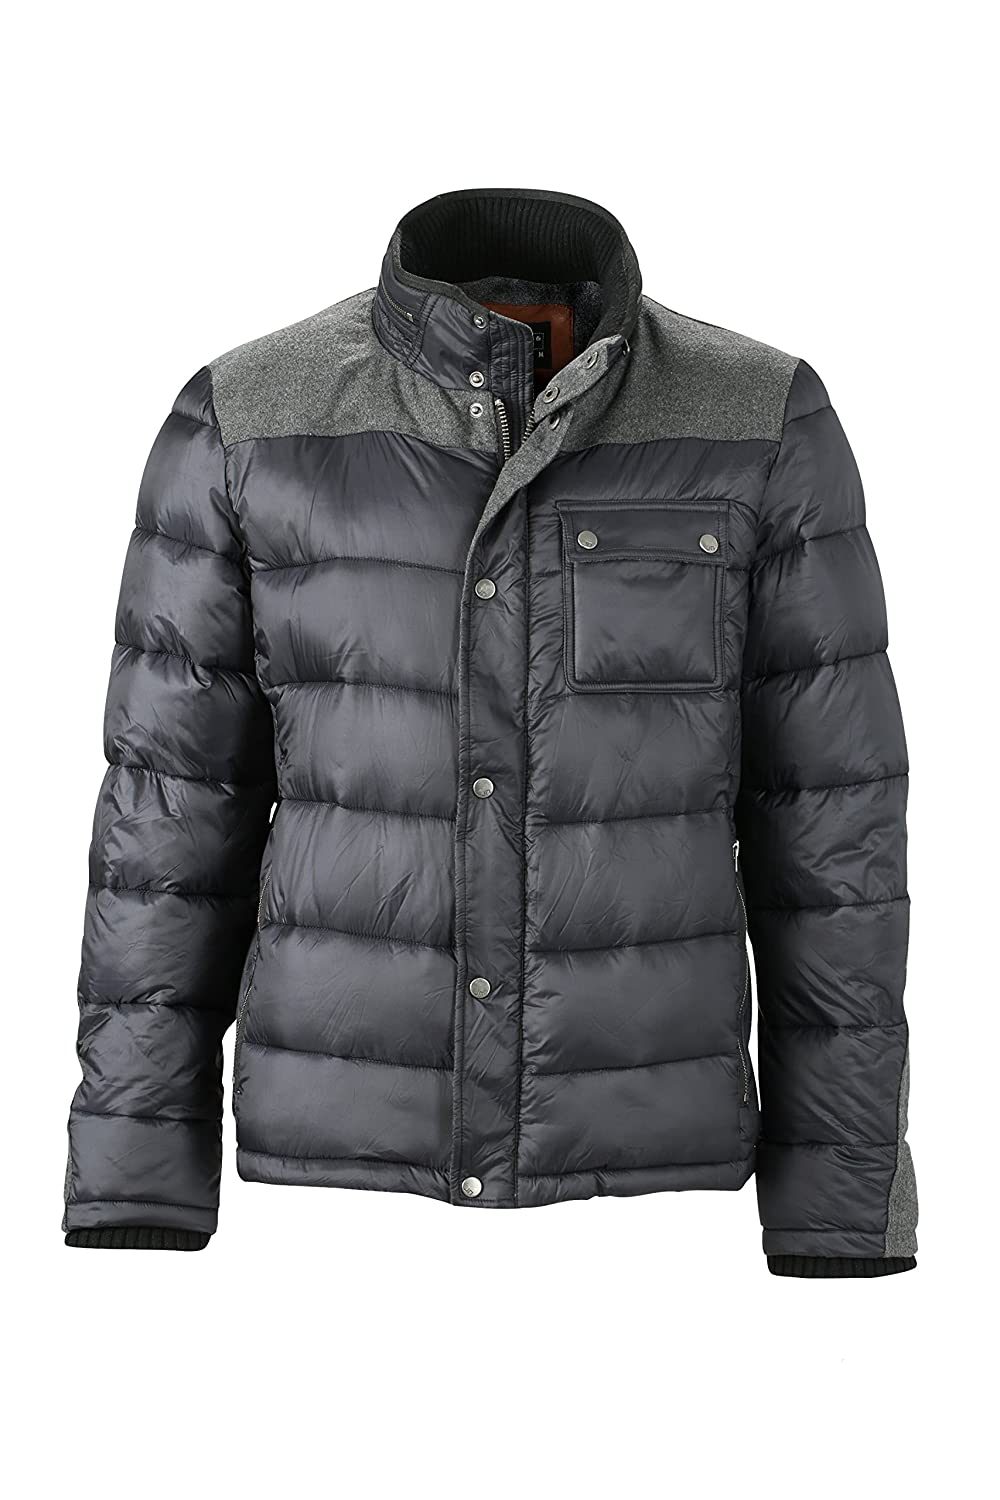 James & Nicholson Herren Jacke Jacke Winter Jacket